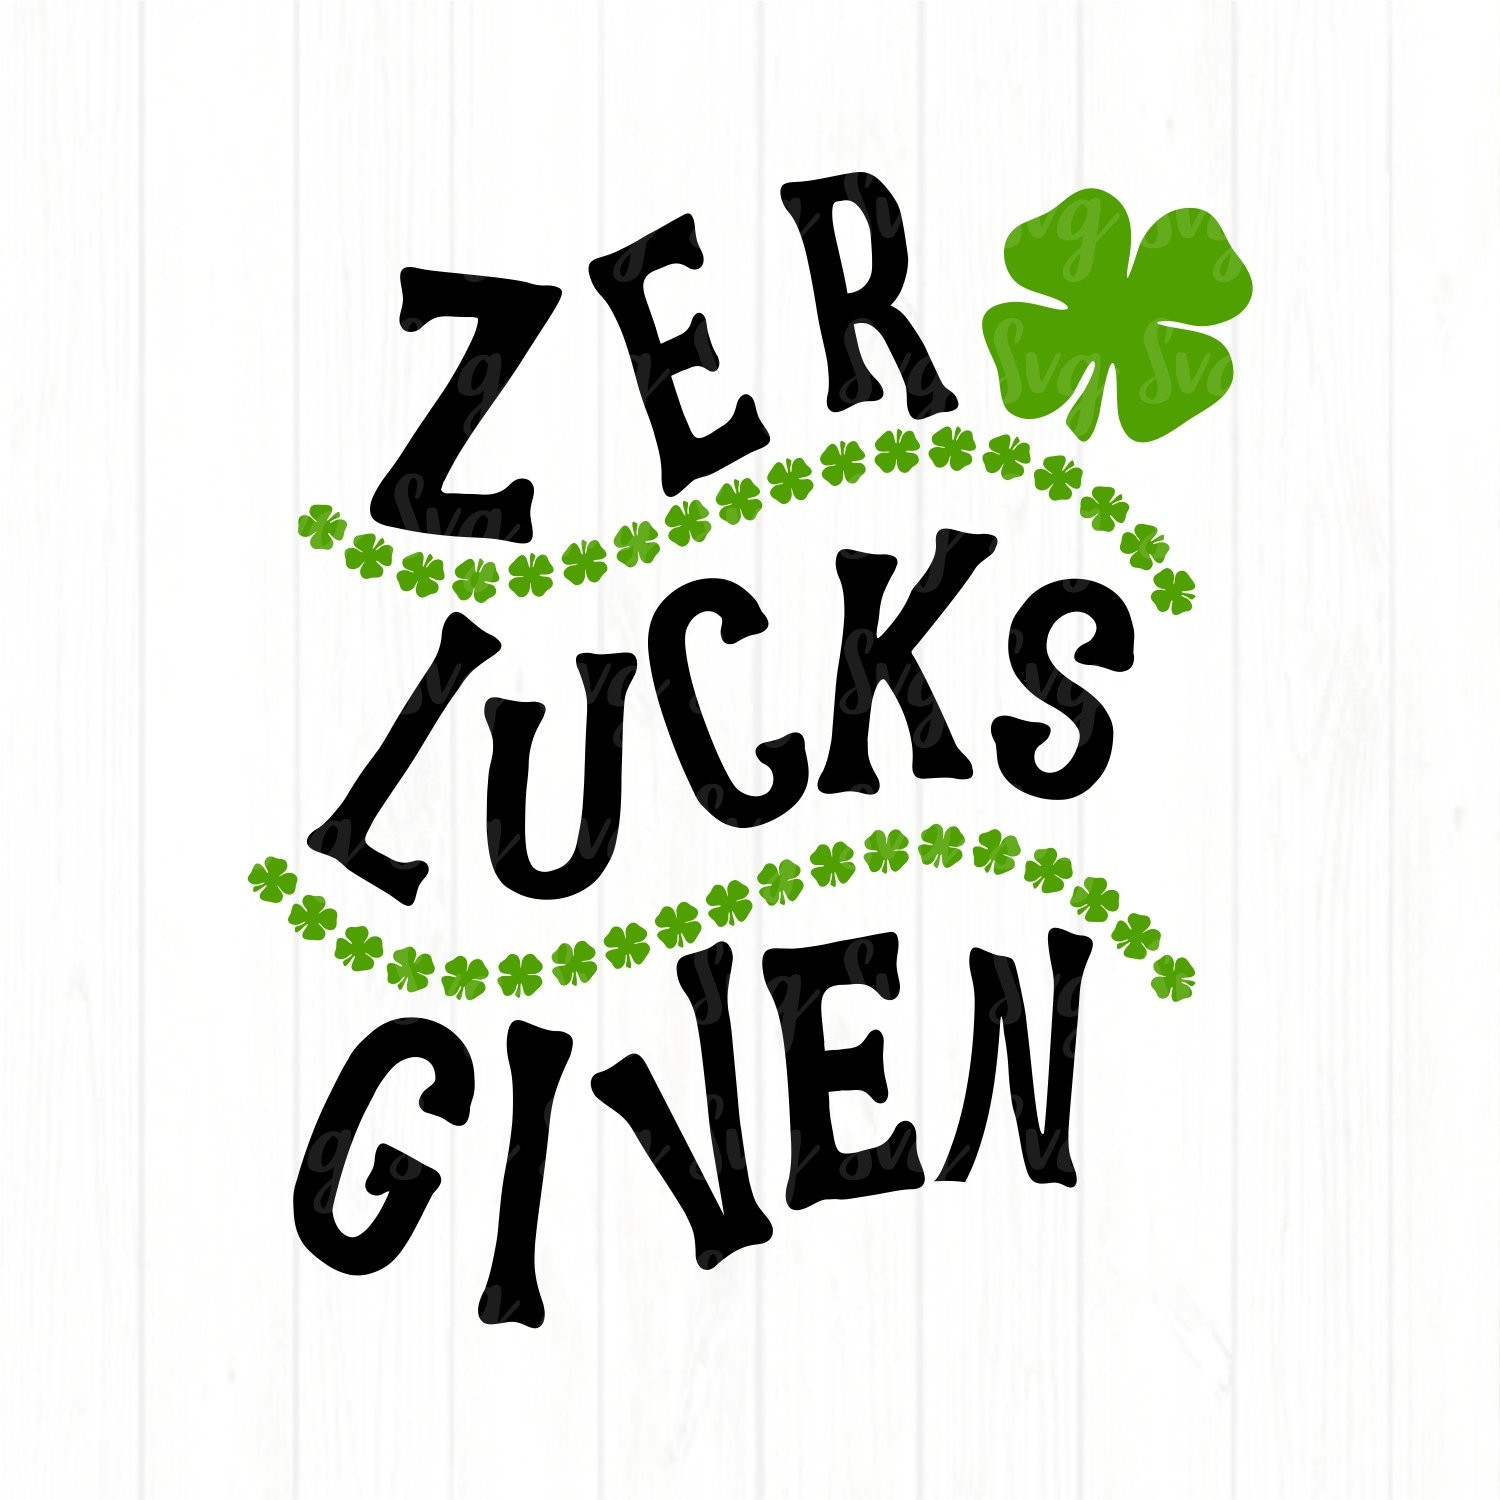 Zero lucks given clipart png black and white download Zero Lucks Given svg,Luck Shamrock svg,Zero Luck svg,St.Patrick\'s Day  svg,Lucky tshirt,crafty cuttable,Cricut Design,Silhouette Design png black and white download